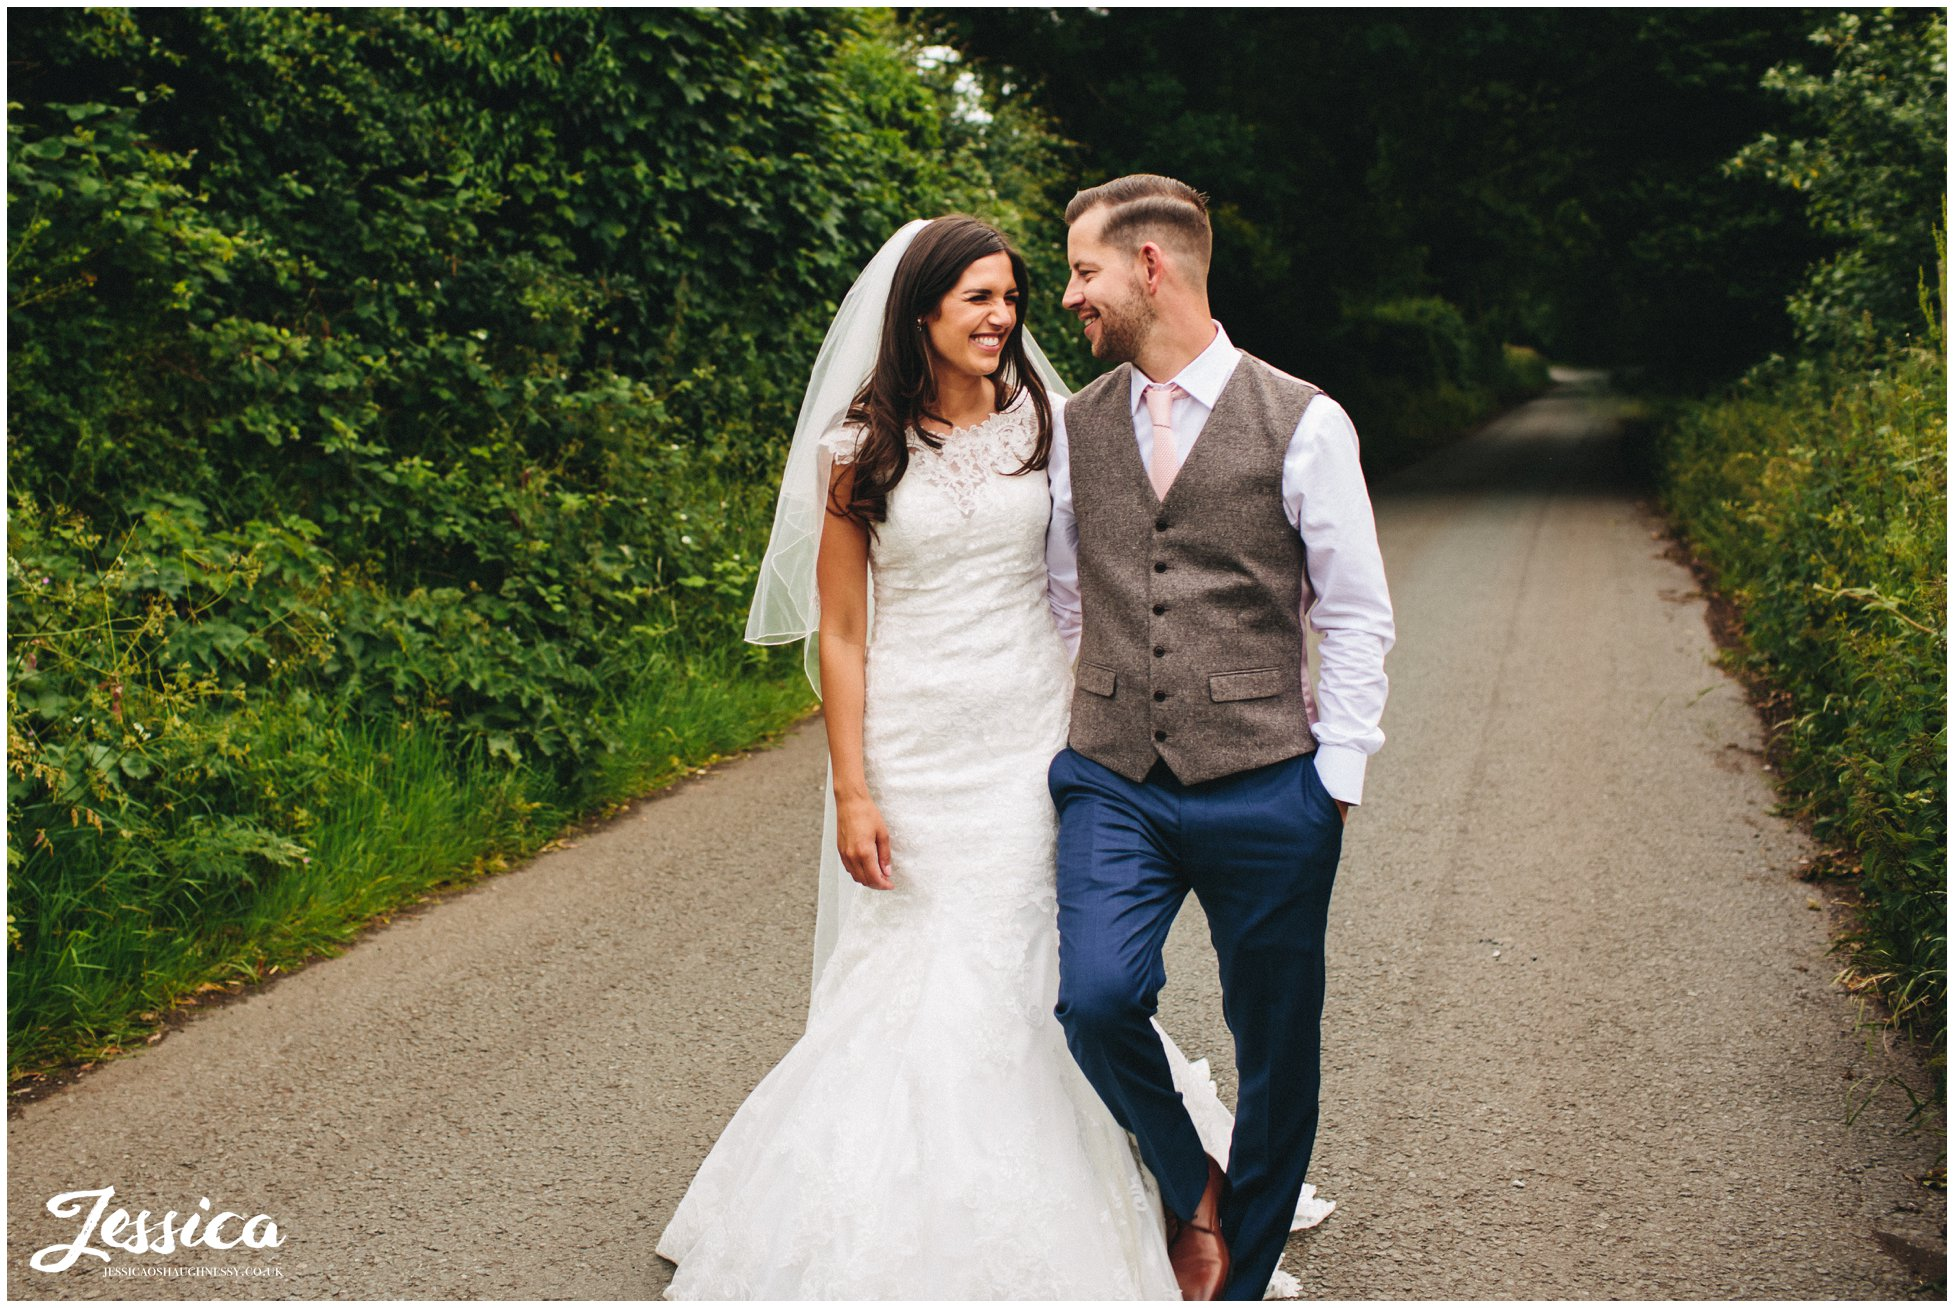 newlywed's walk down country lanes outside their wirral wedding venue